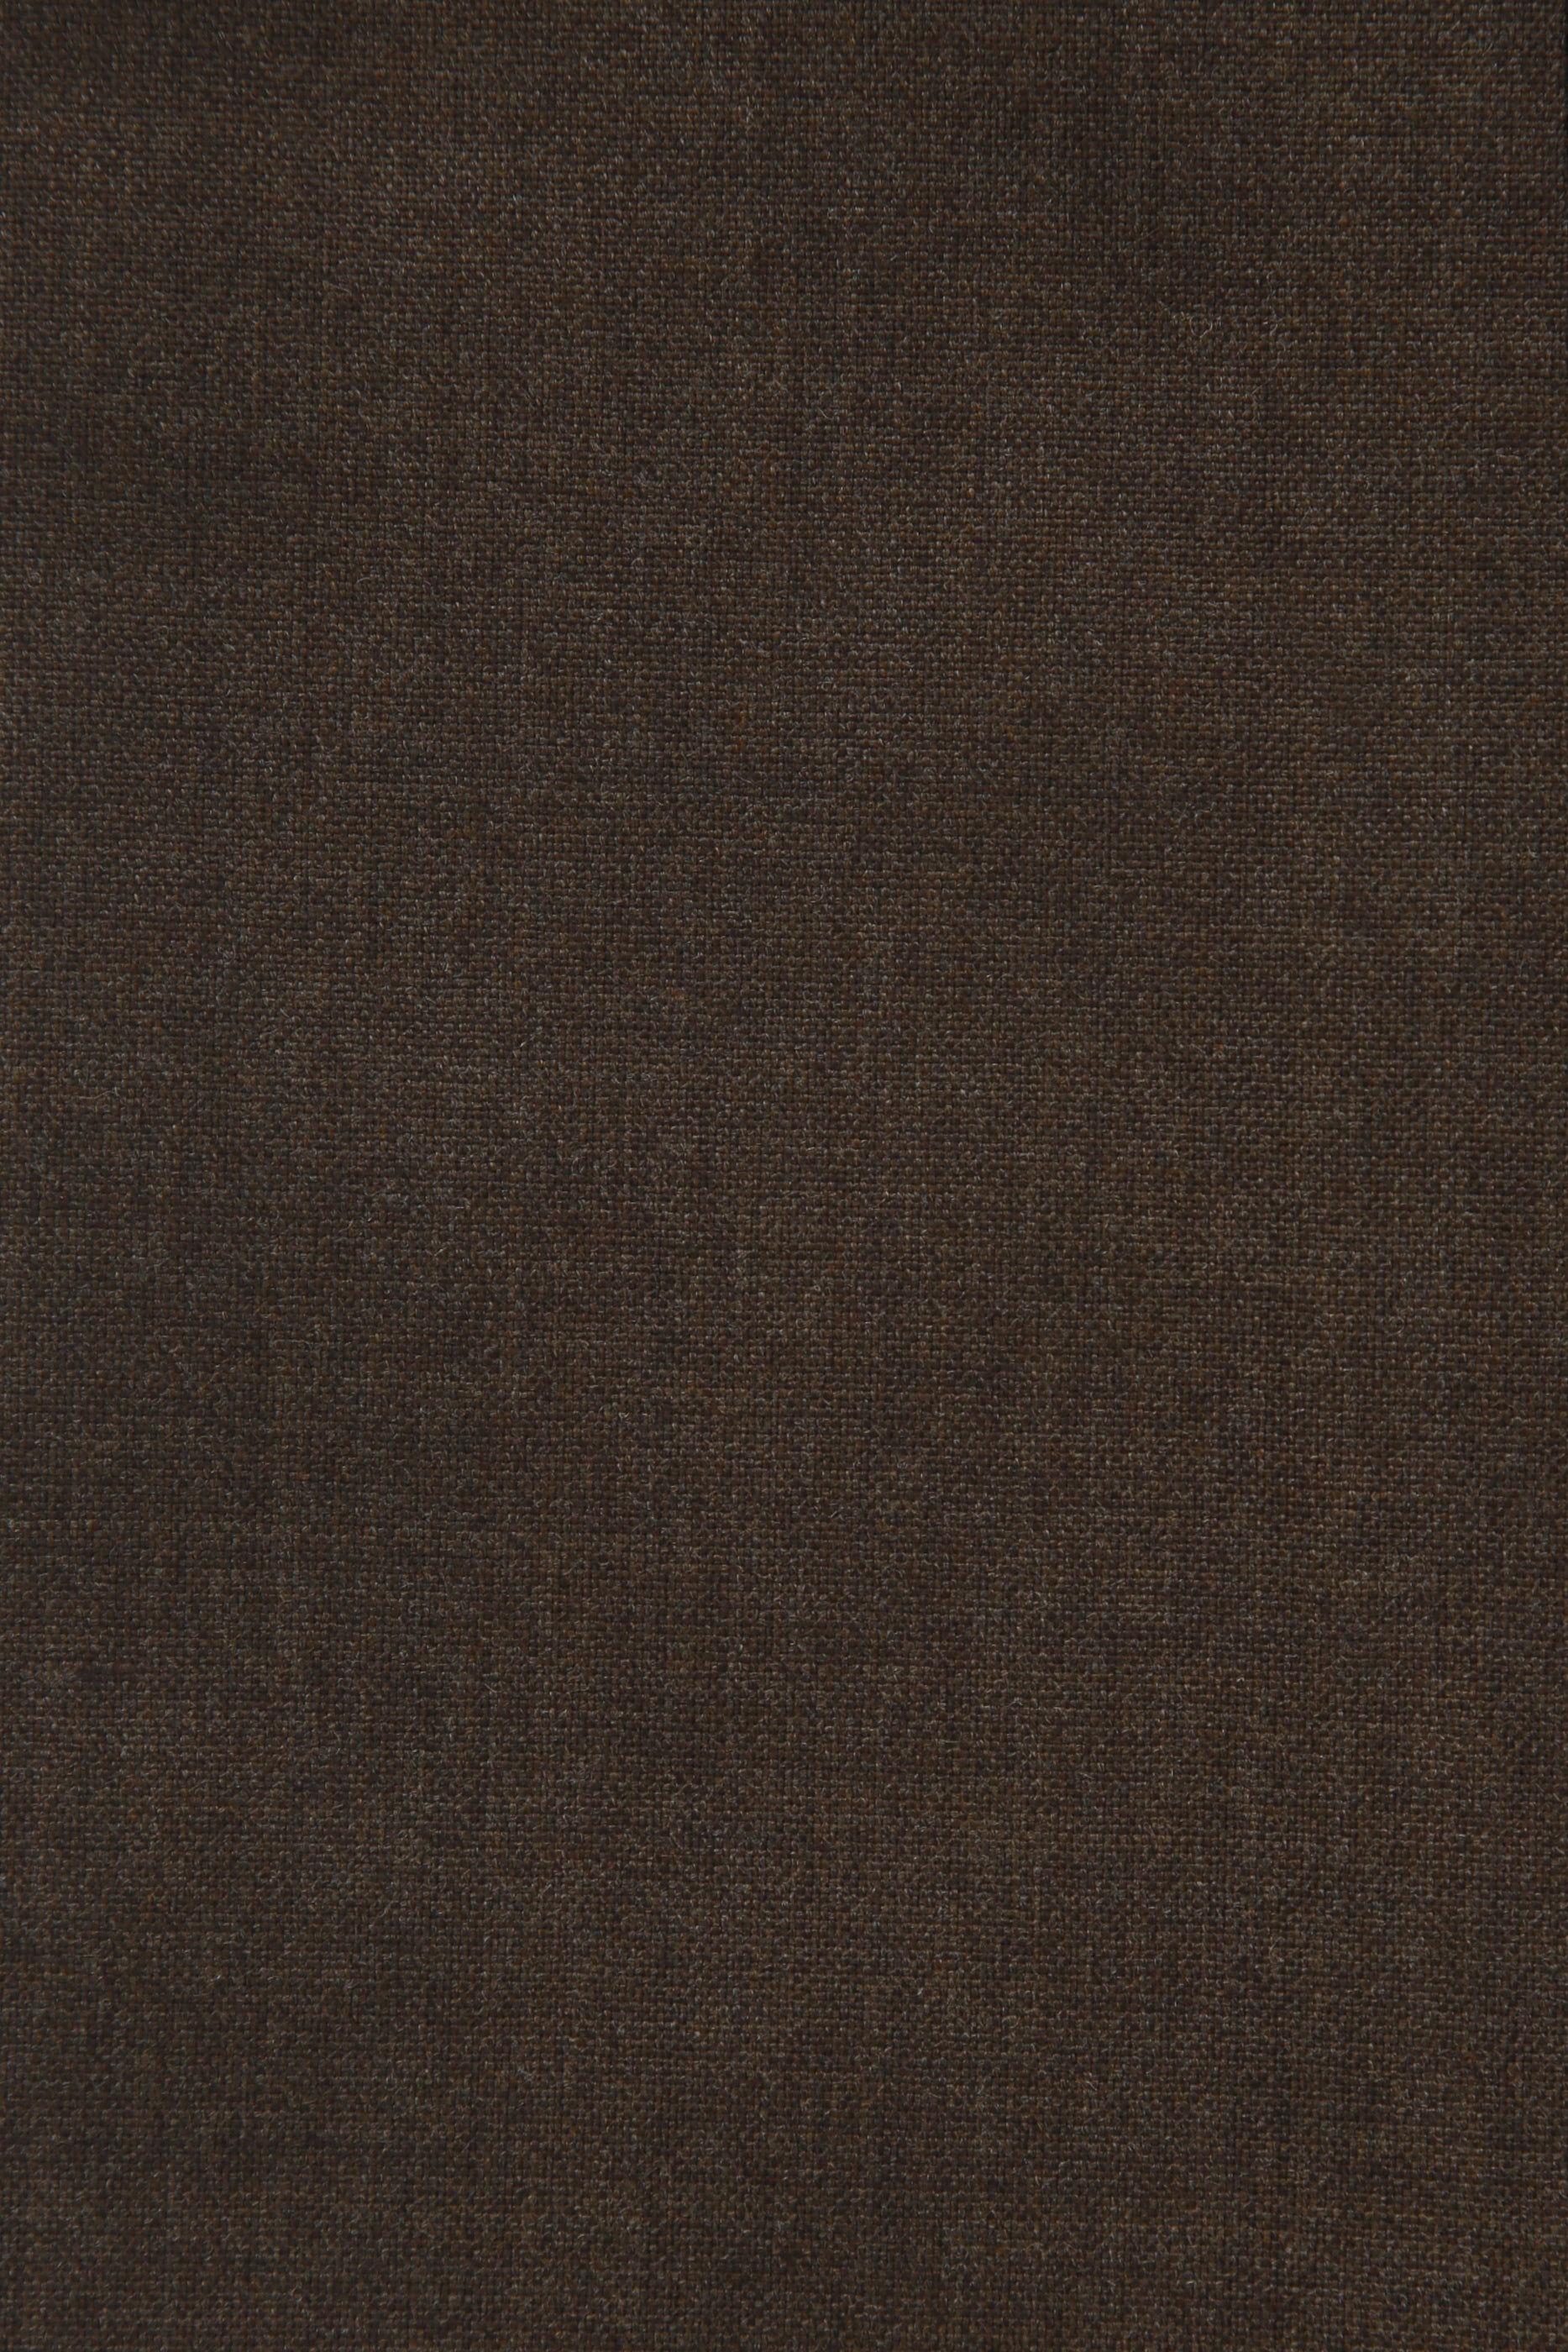 207 Single-pleated in brown wool